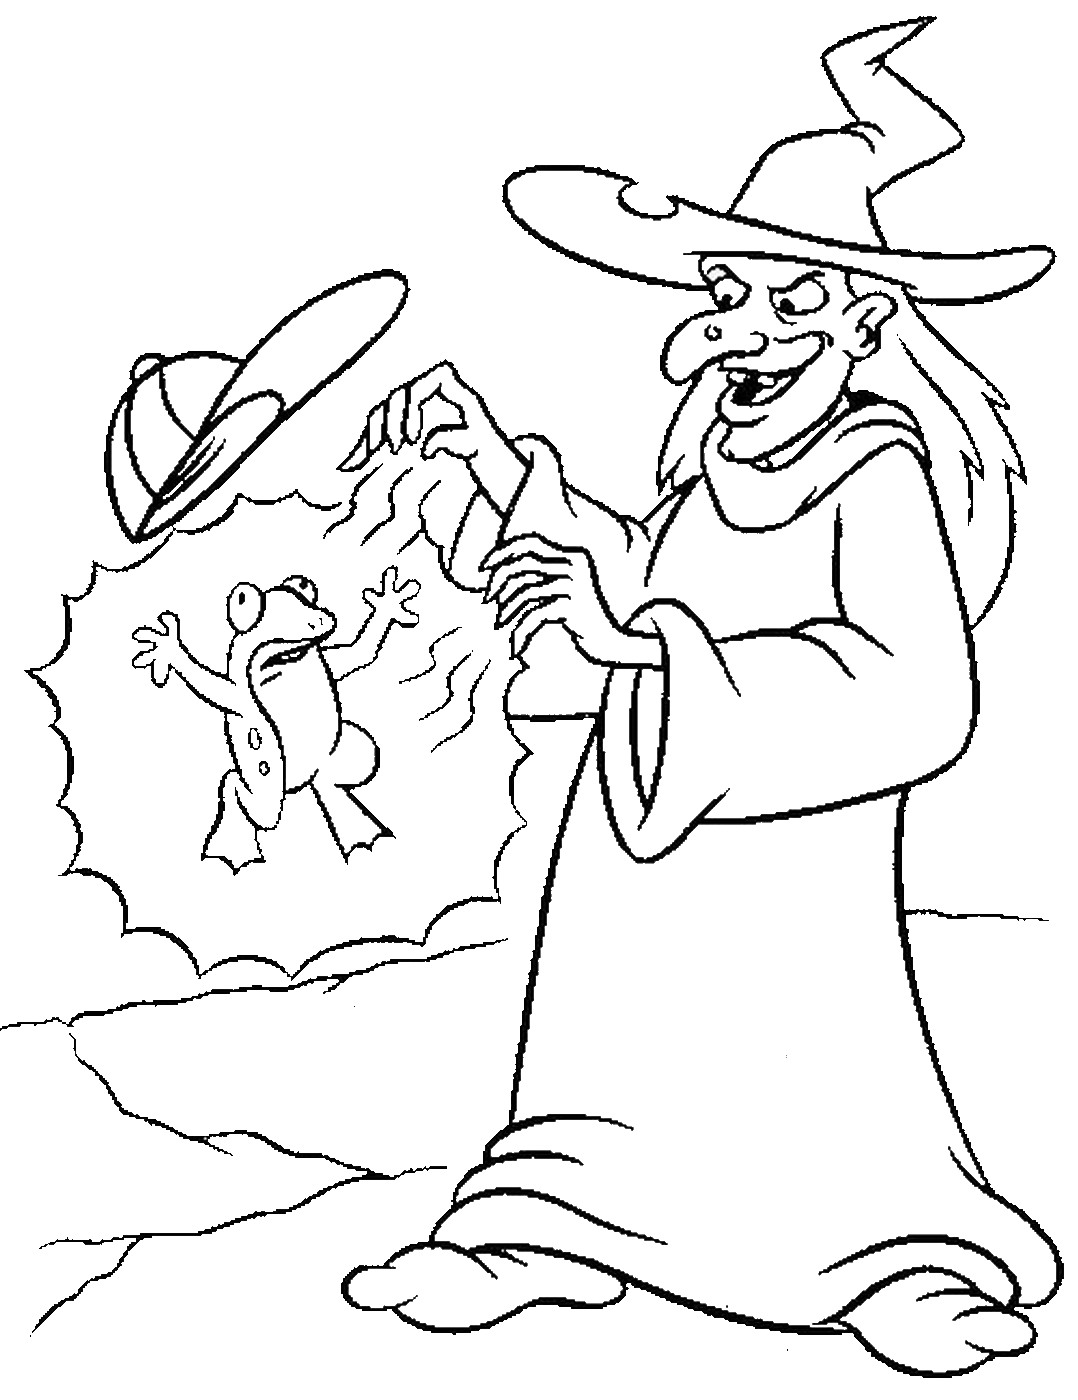 coloring pages wizard of oz wizard of oz coloring sheets coloring home wizard of oz pages coloring